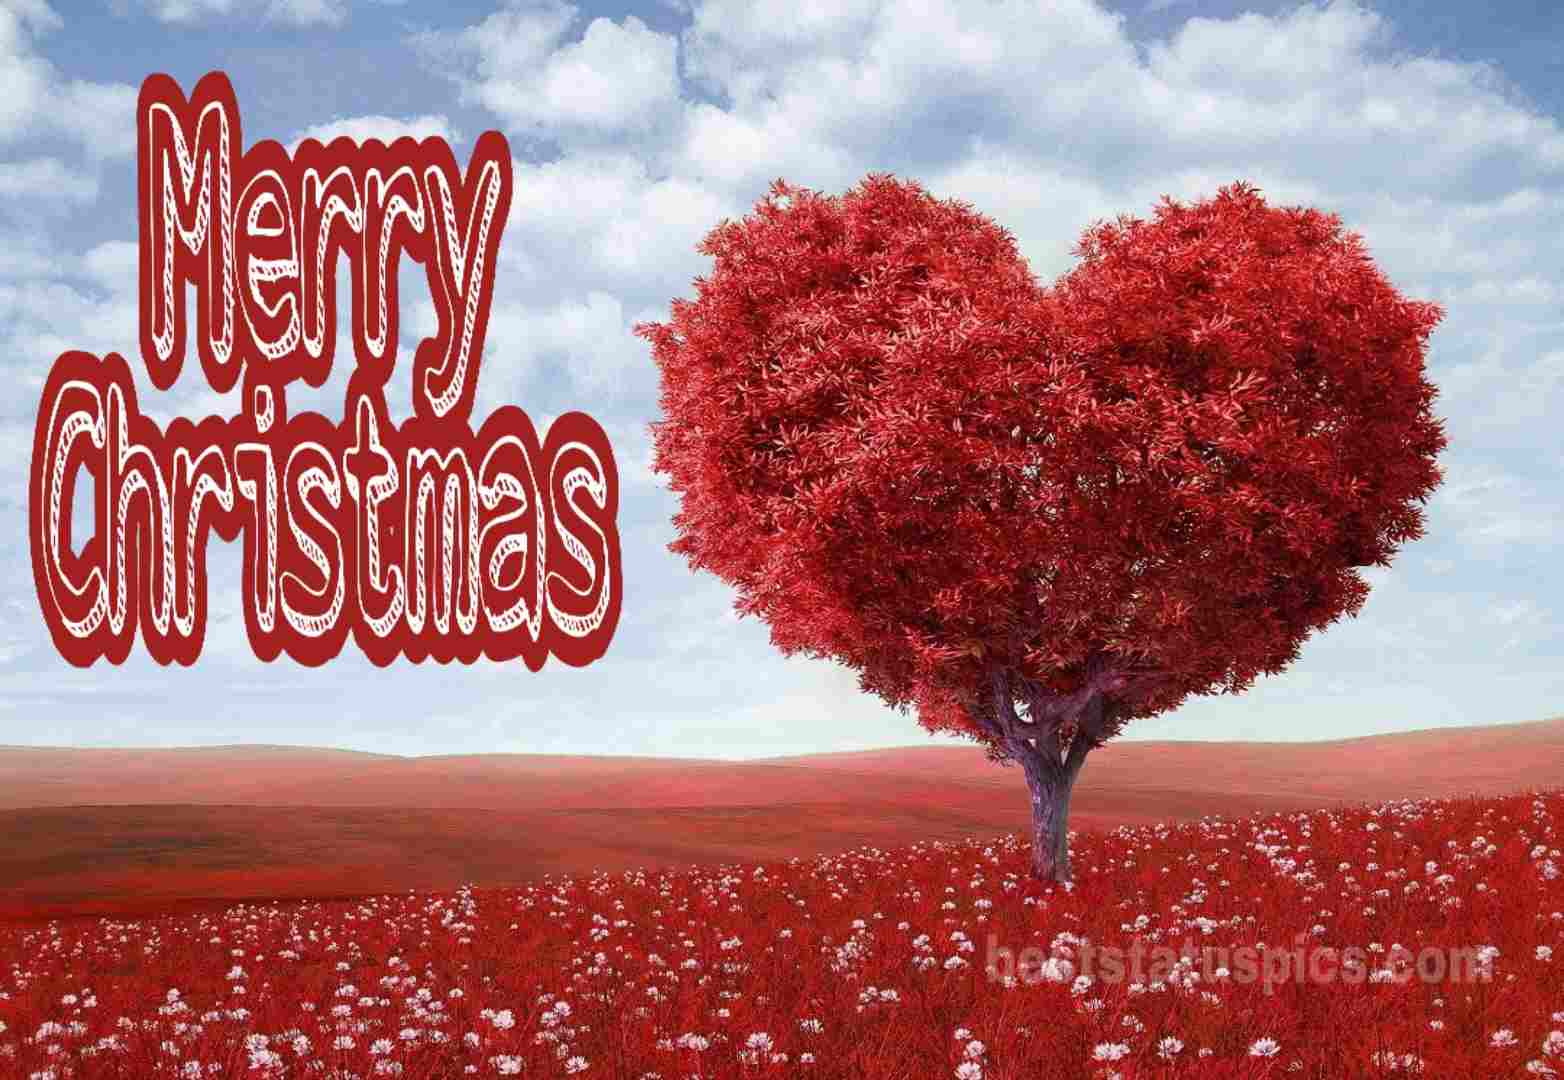 Merry Christmas wishes 2019 with Love Heart